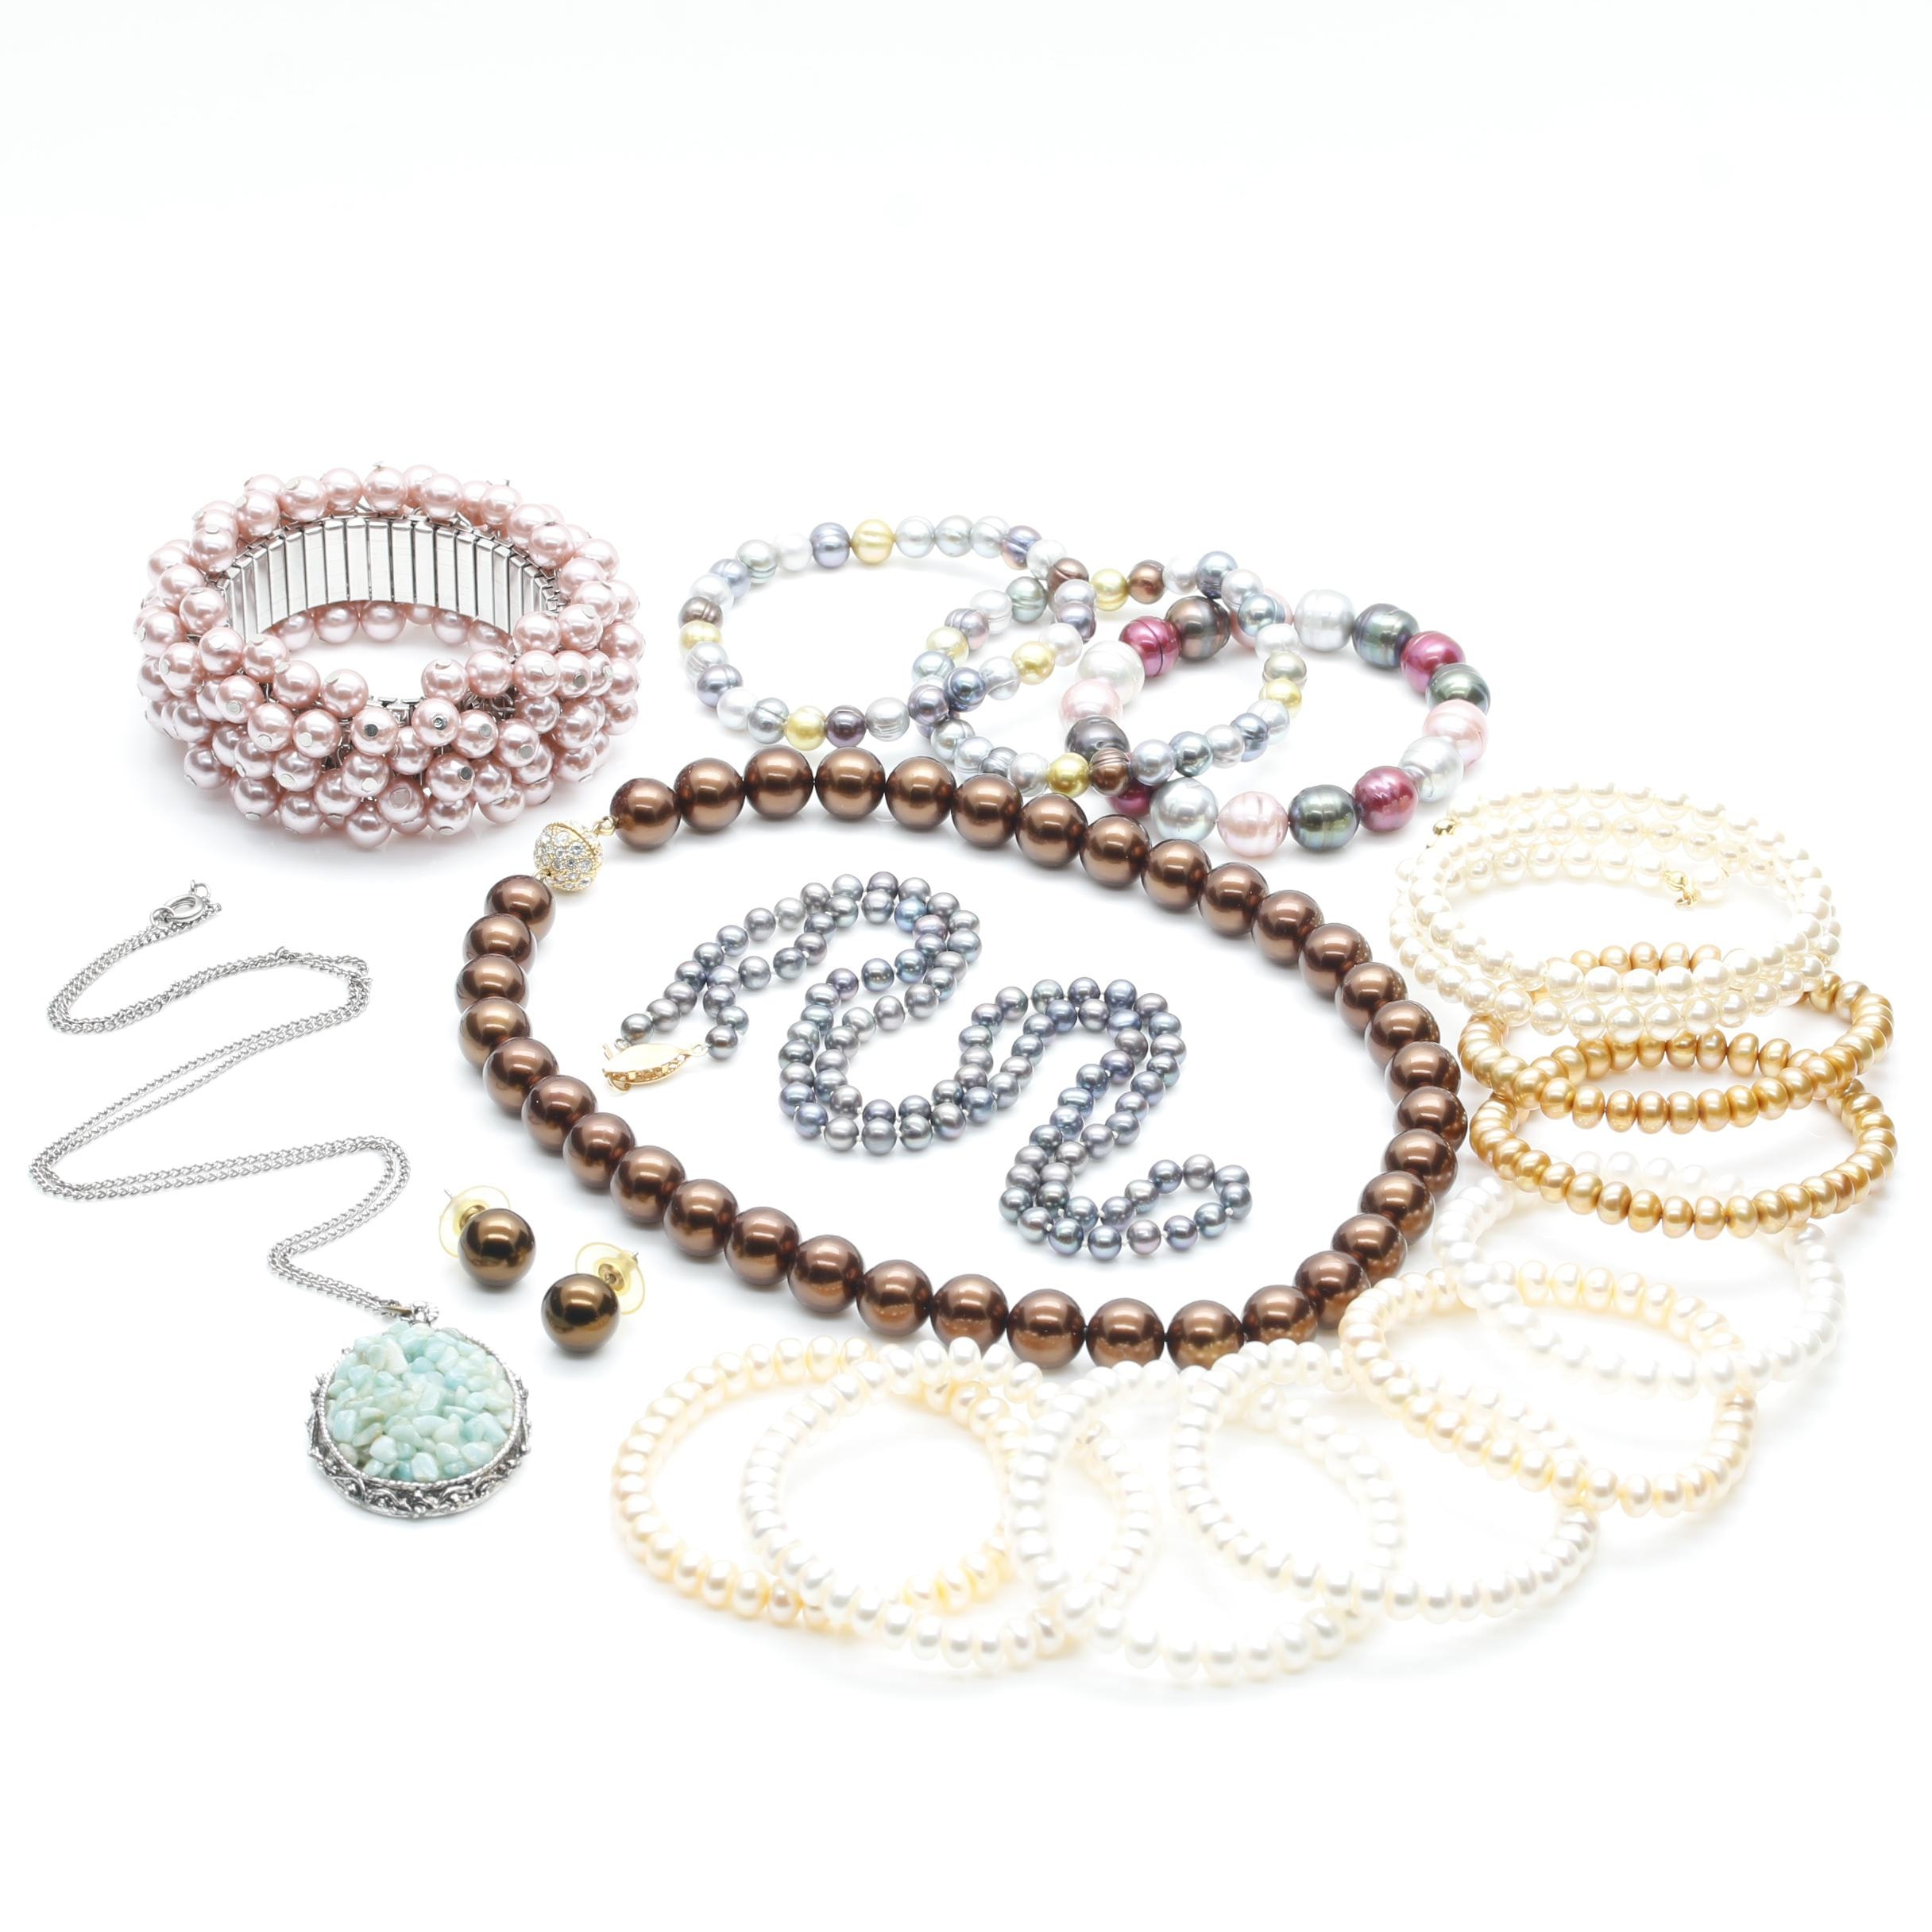 Assortment of Multi Colored Cultured Pearl and Aquamarine Jewelry